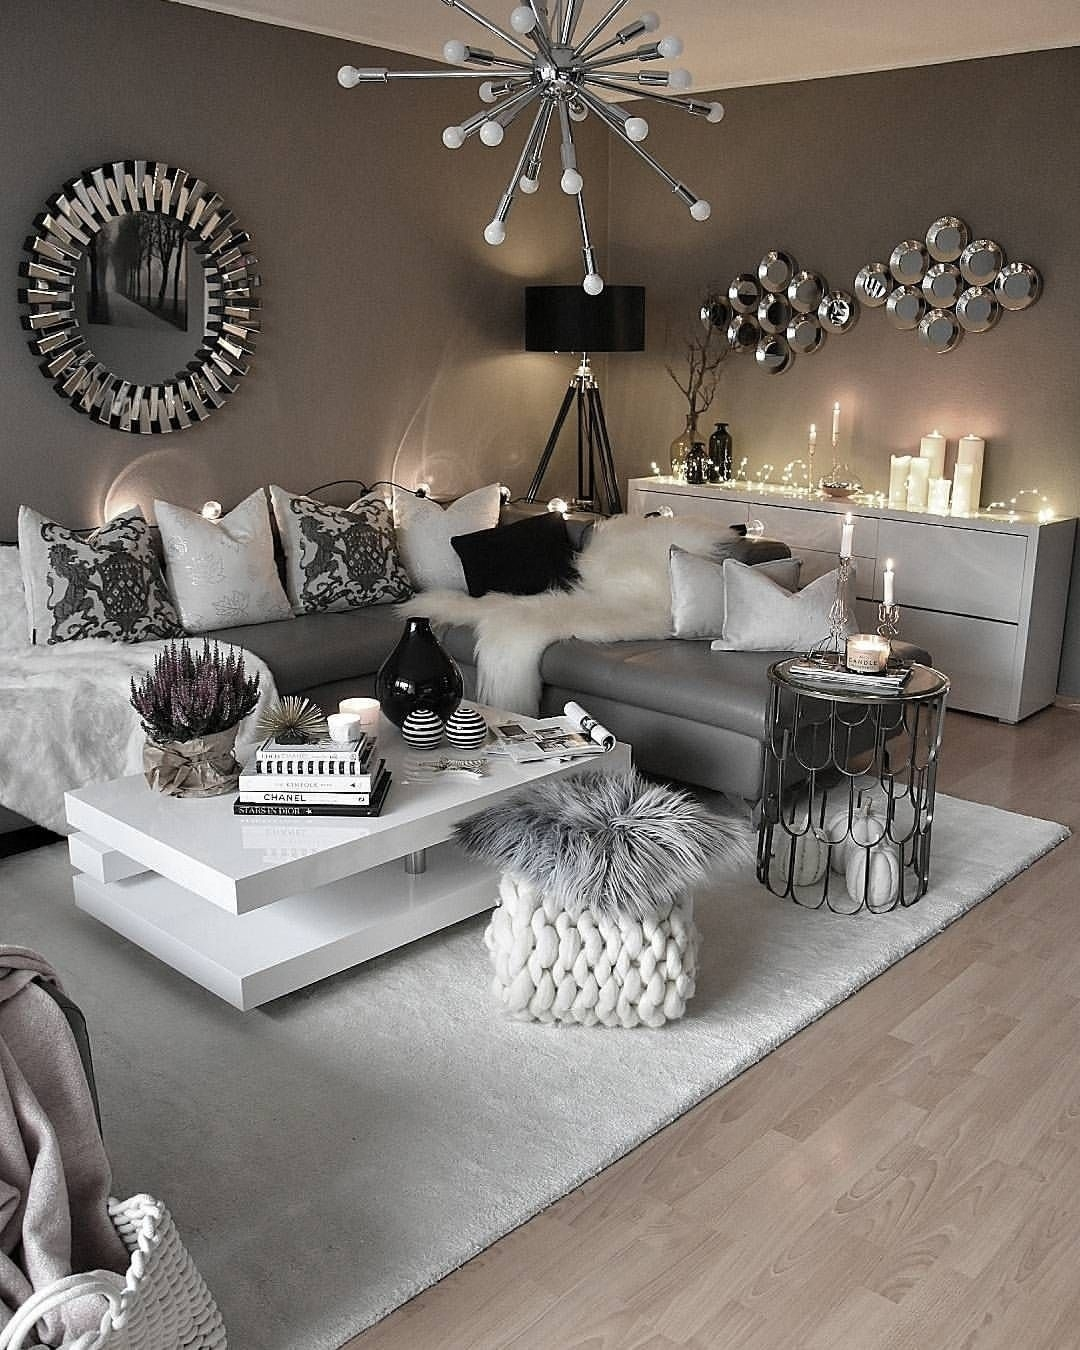 216K Followers, 428 Following, 656 Posts - See Instagram intended for Living Room Ideas Grey And Black